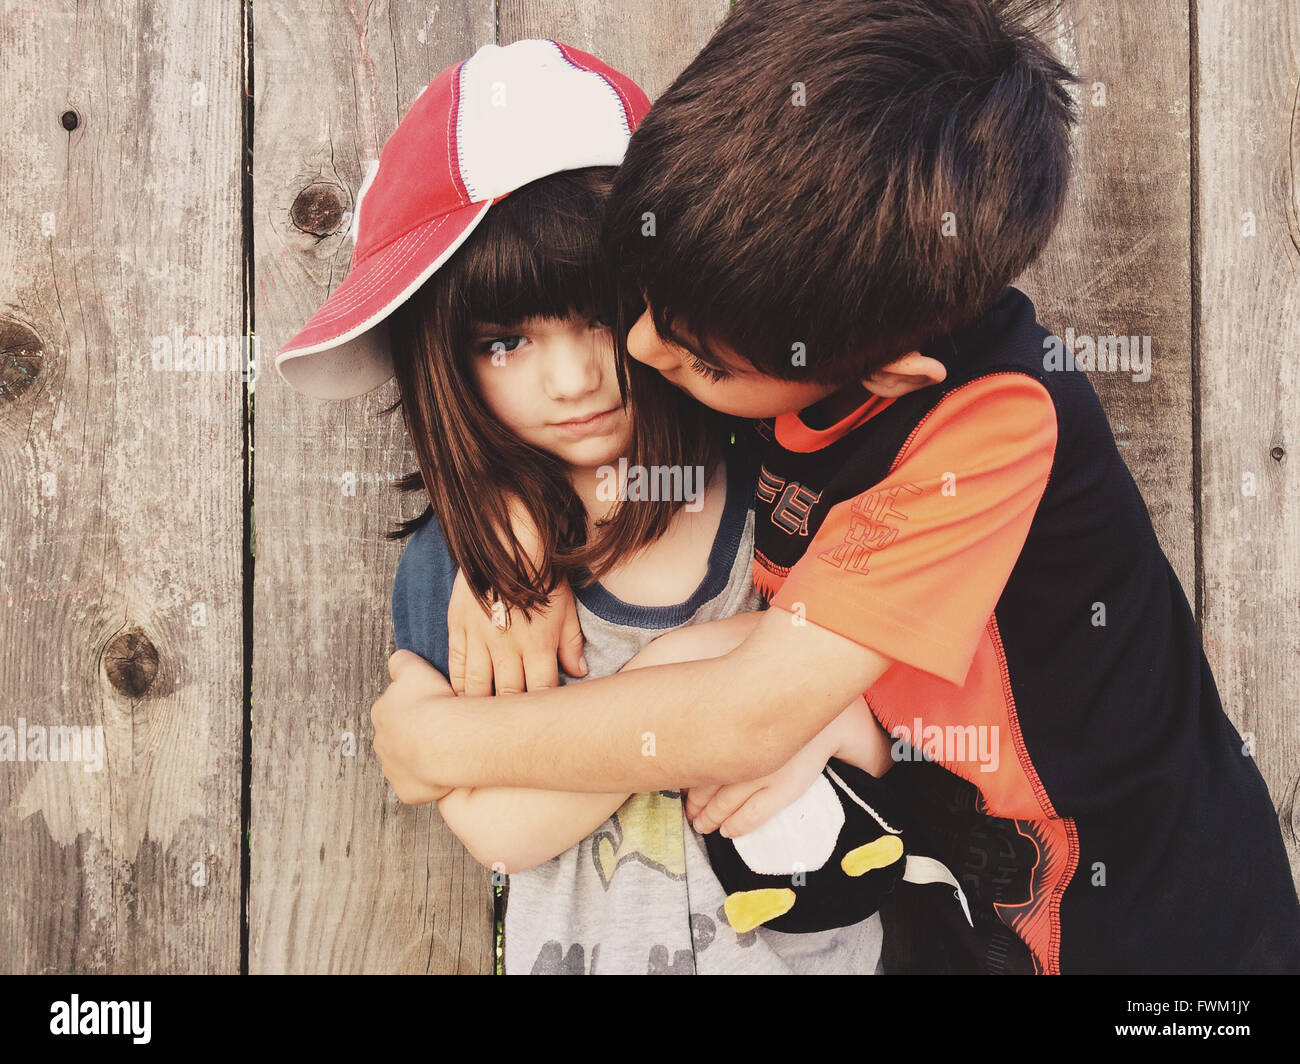 Cute Sibling Embracing Against Wooden Wall - Stock Image